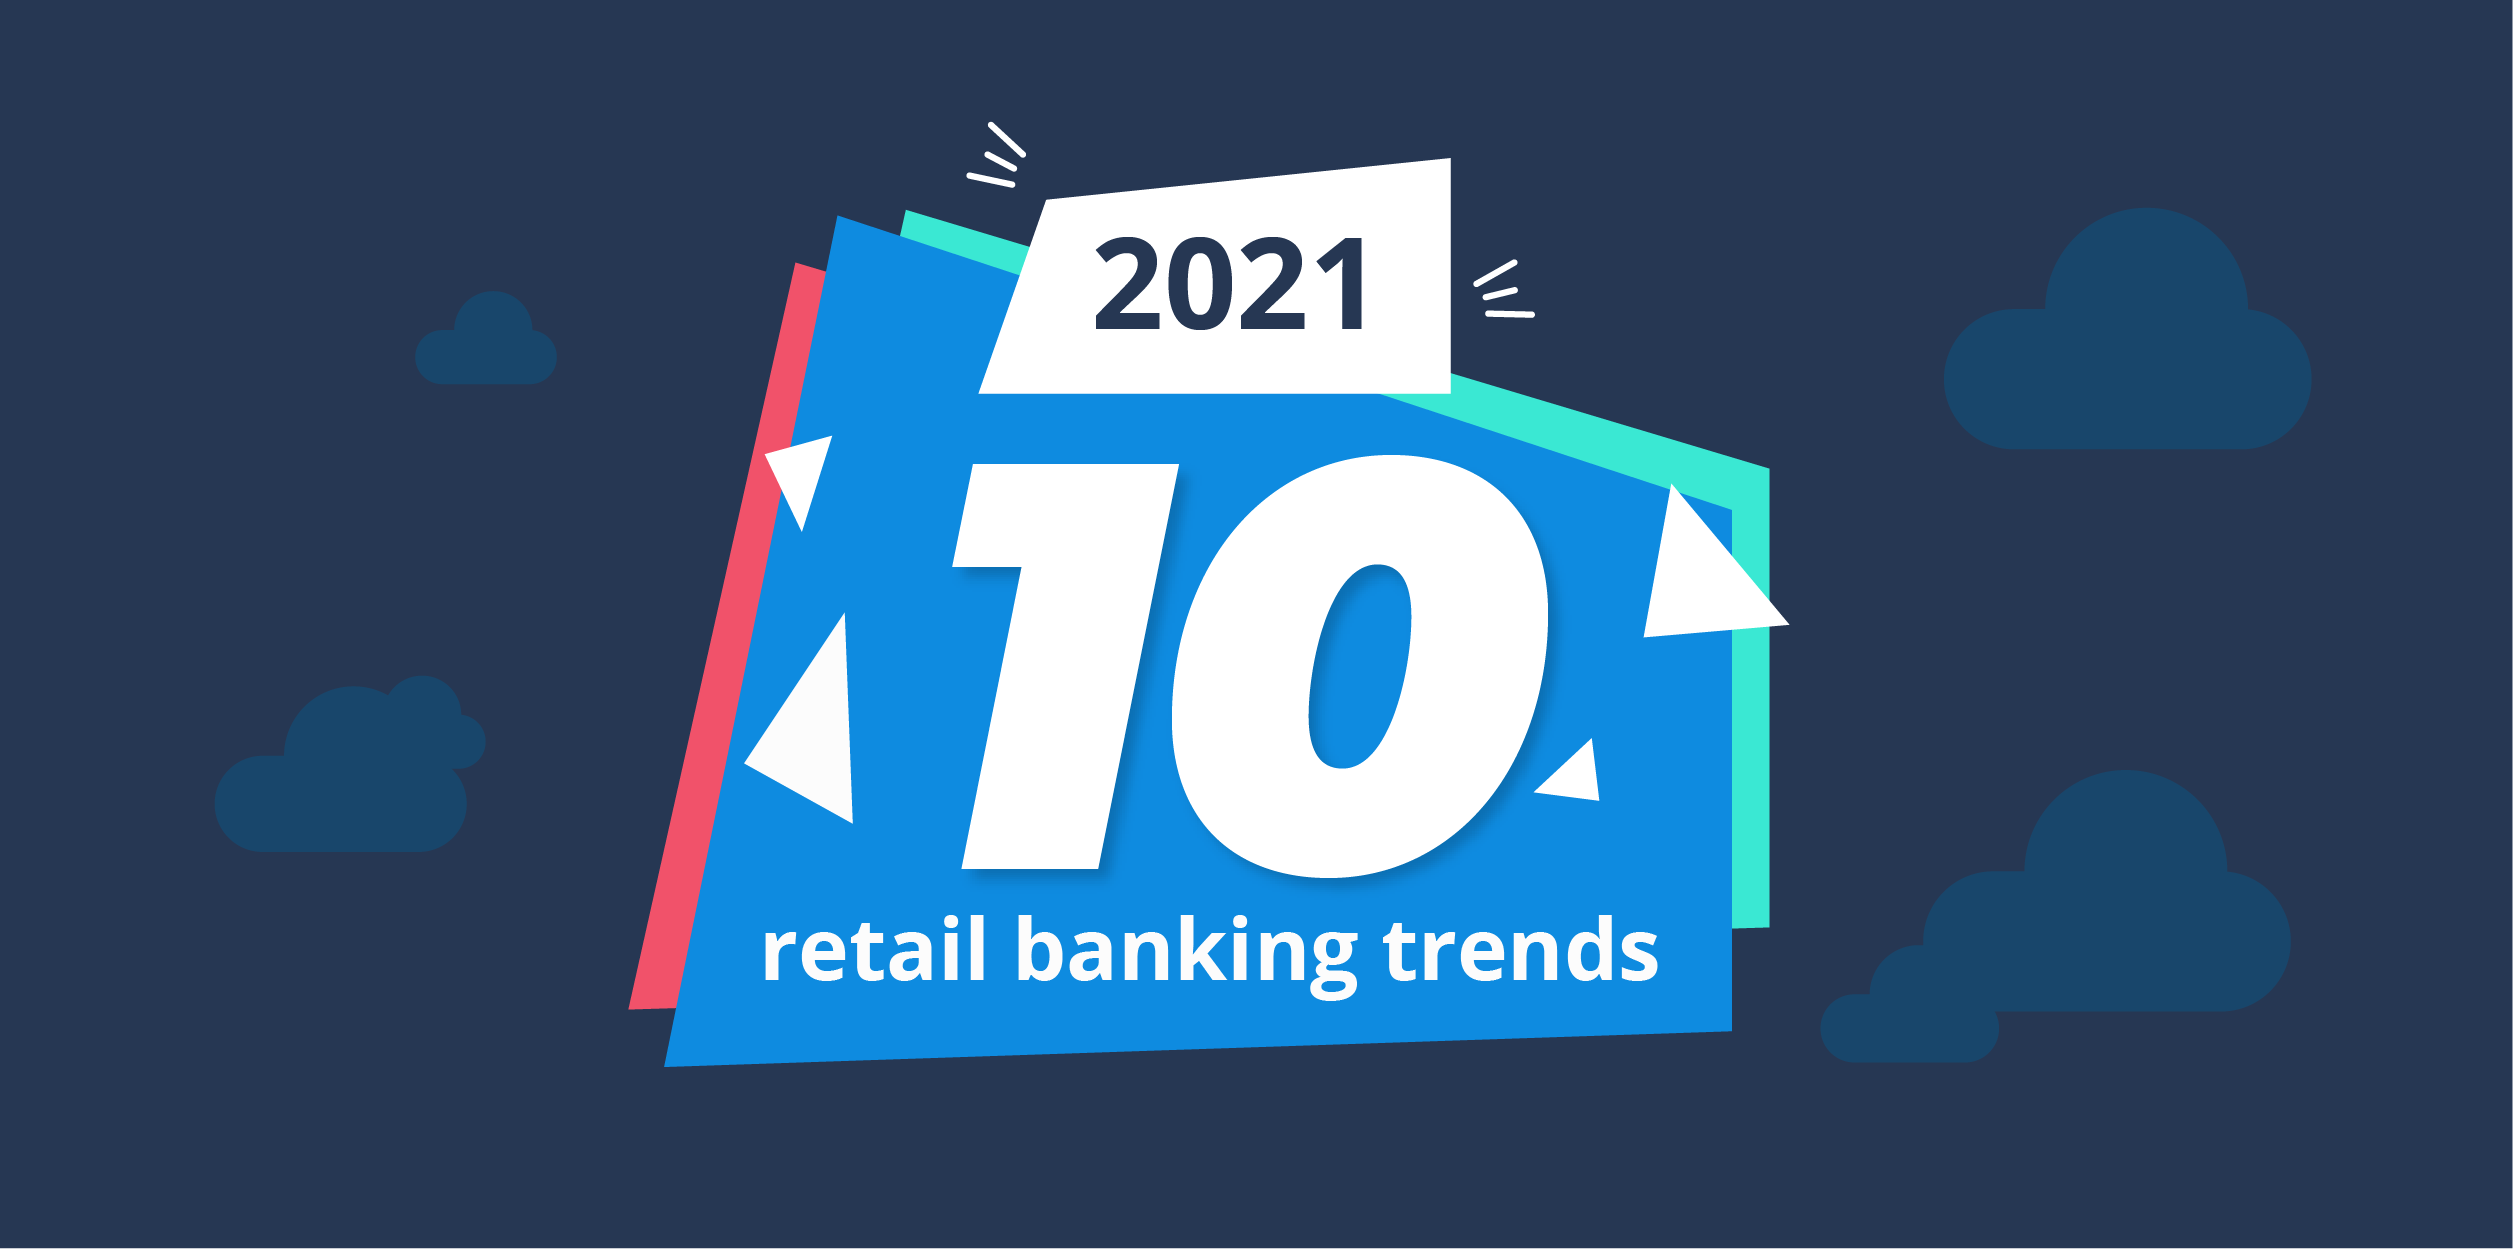 Retail banking trends to watch for in 2021